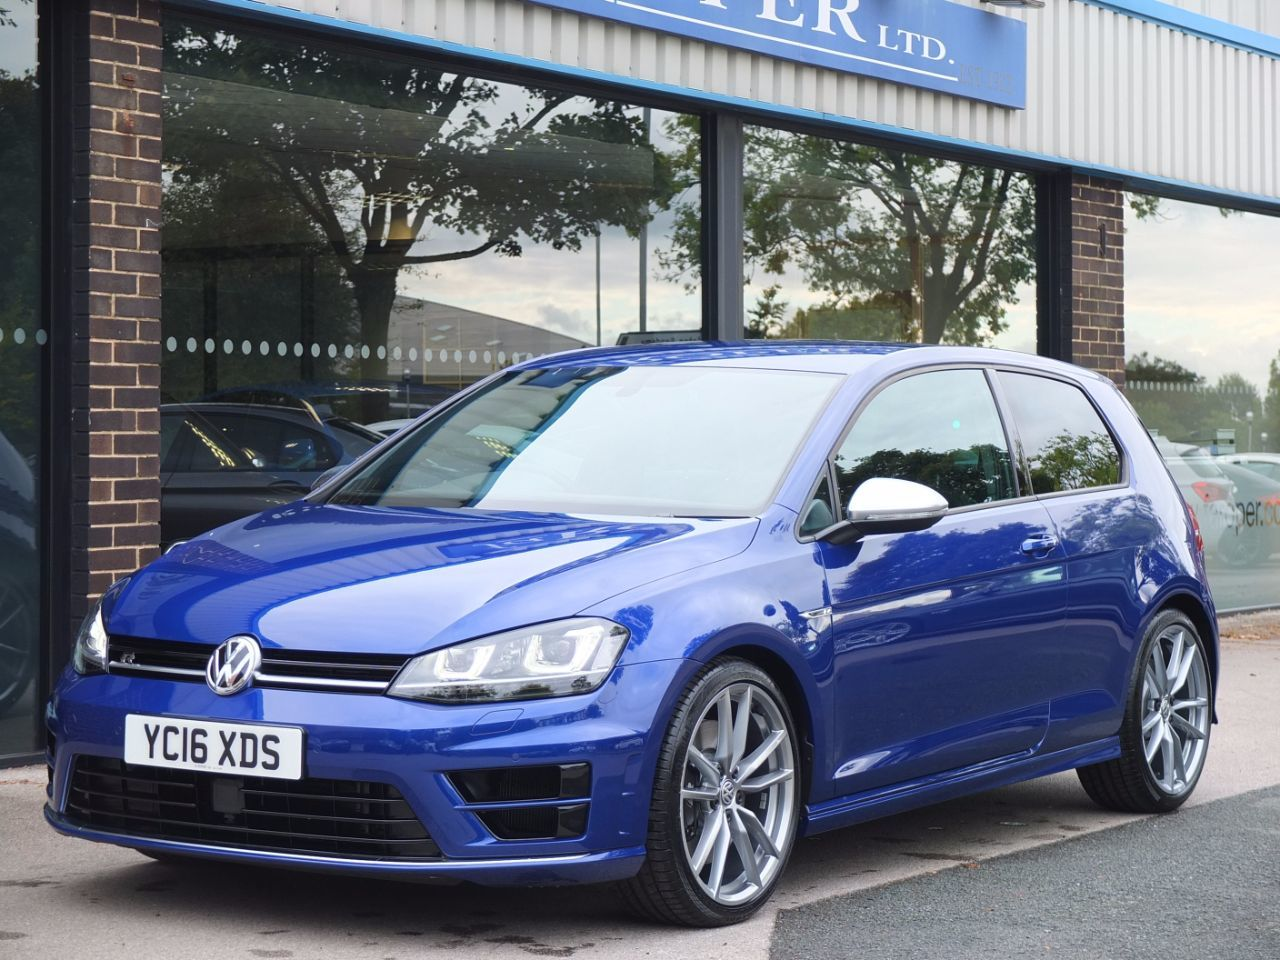 Volkswagen Golf 2.0 TSI R 3 door DSG Hatchback Petrol Lapiz Blue MetallicVolkswagen Golf 2.0 TSI R 3 door DSG Hatchback Petrol Lapiz Blue Metallic at fa Roper Ltd Bradford